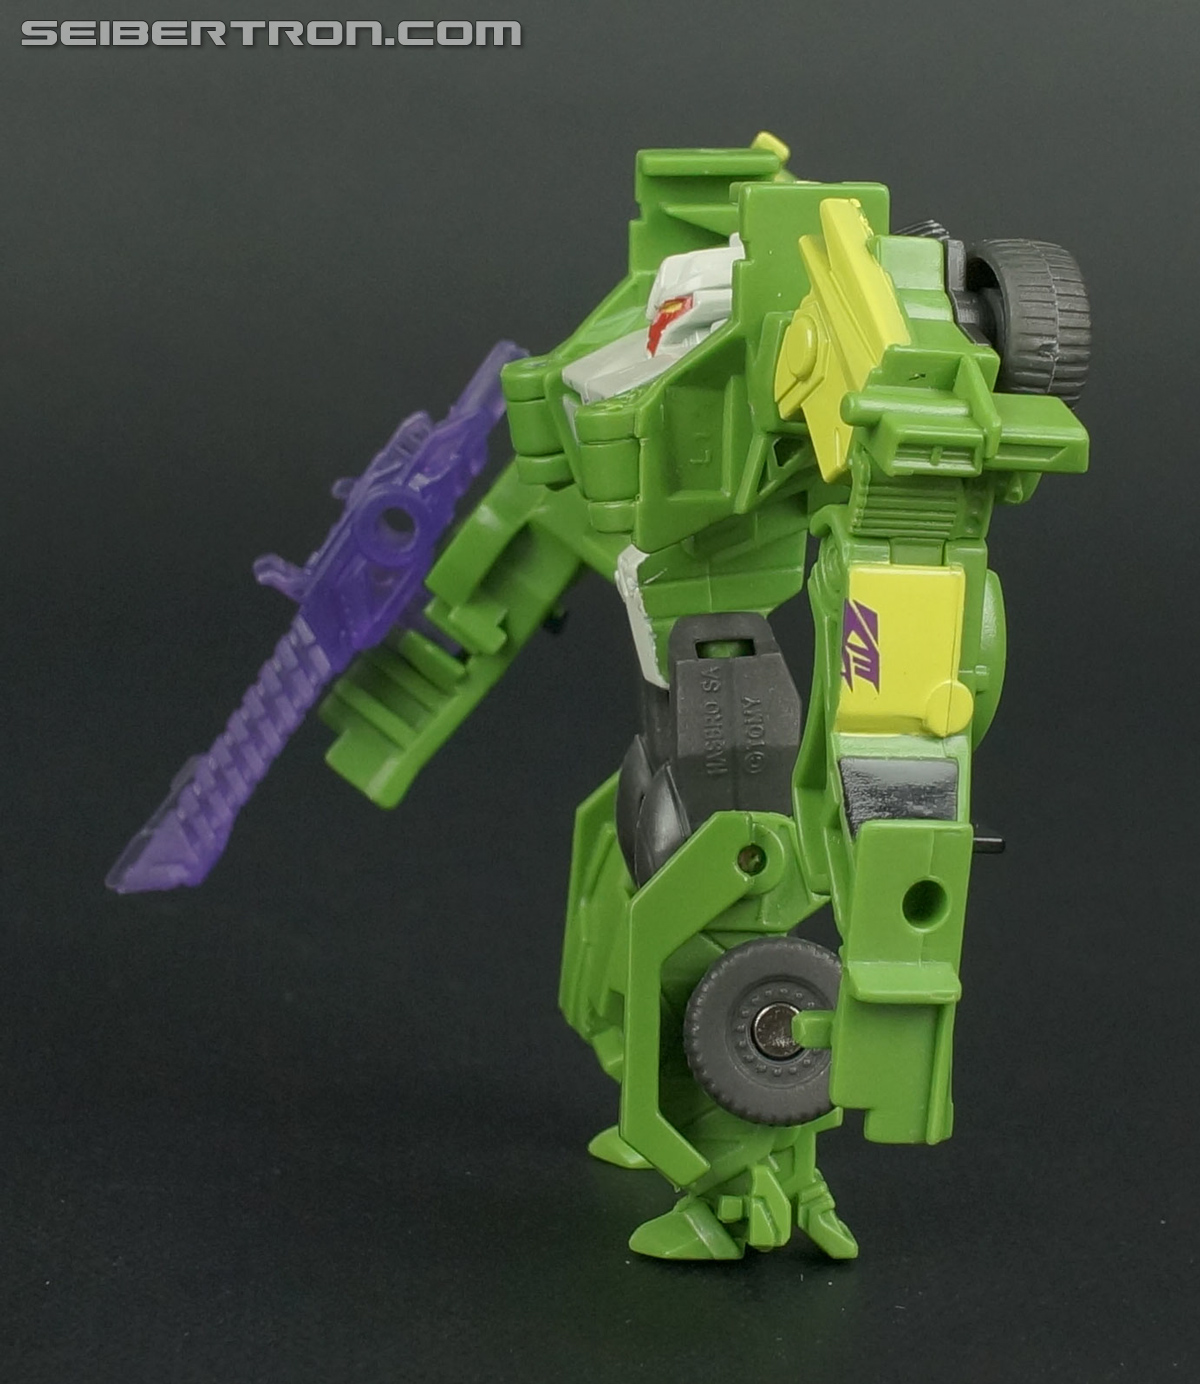 Transformers Prime Beast Hunters Cyberverse Breakdown (Apex Hunter Armor) (Image #54 of 96)